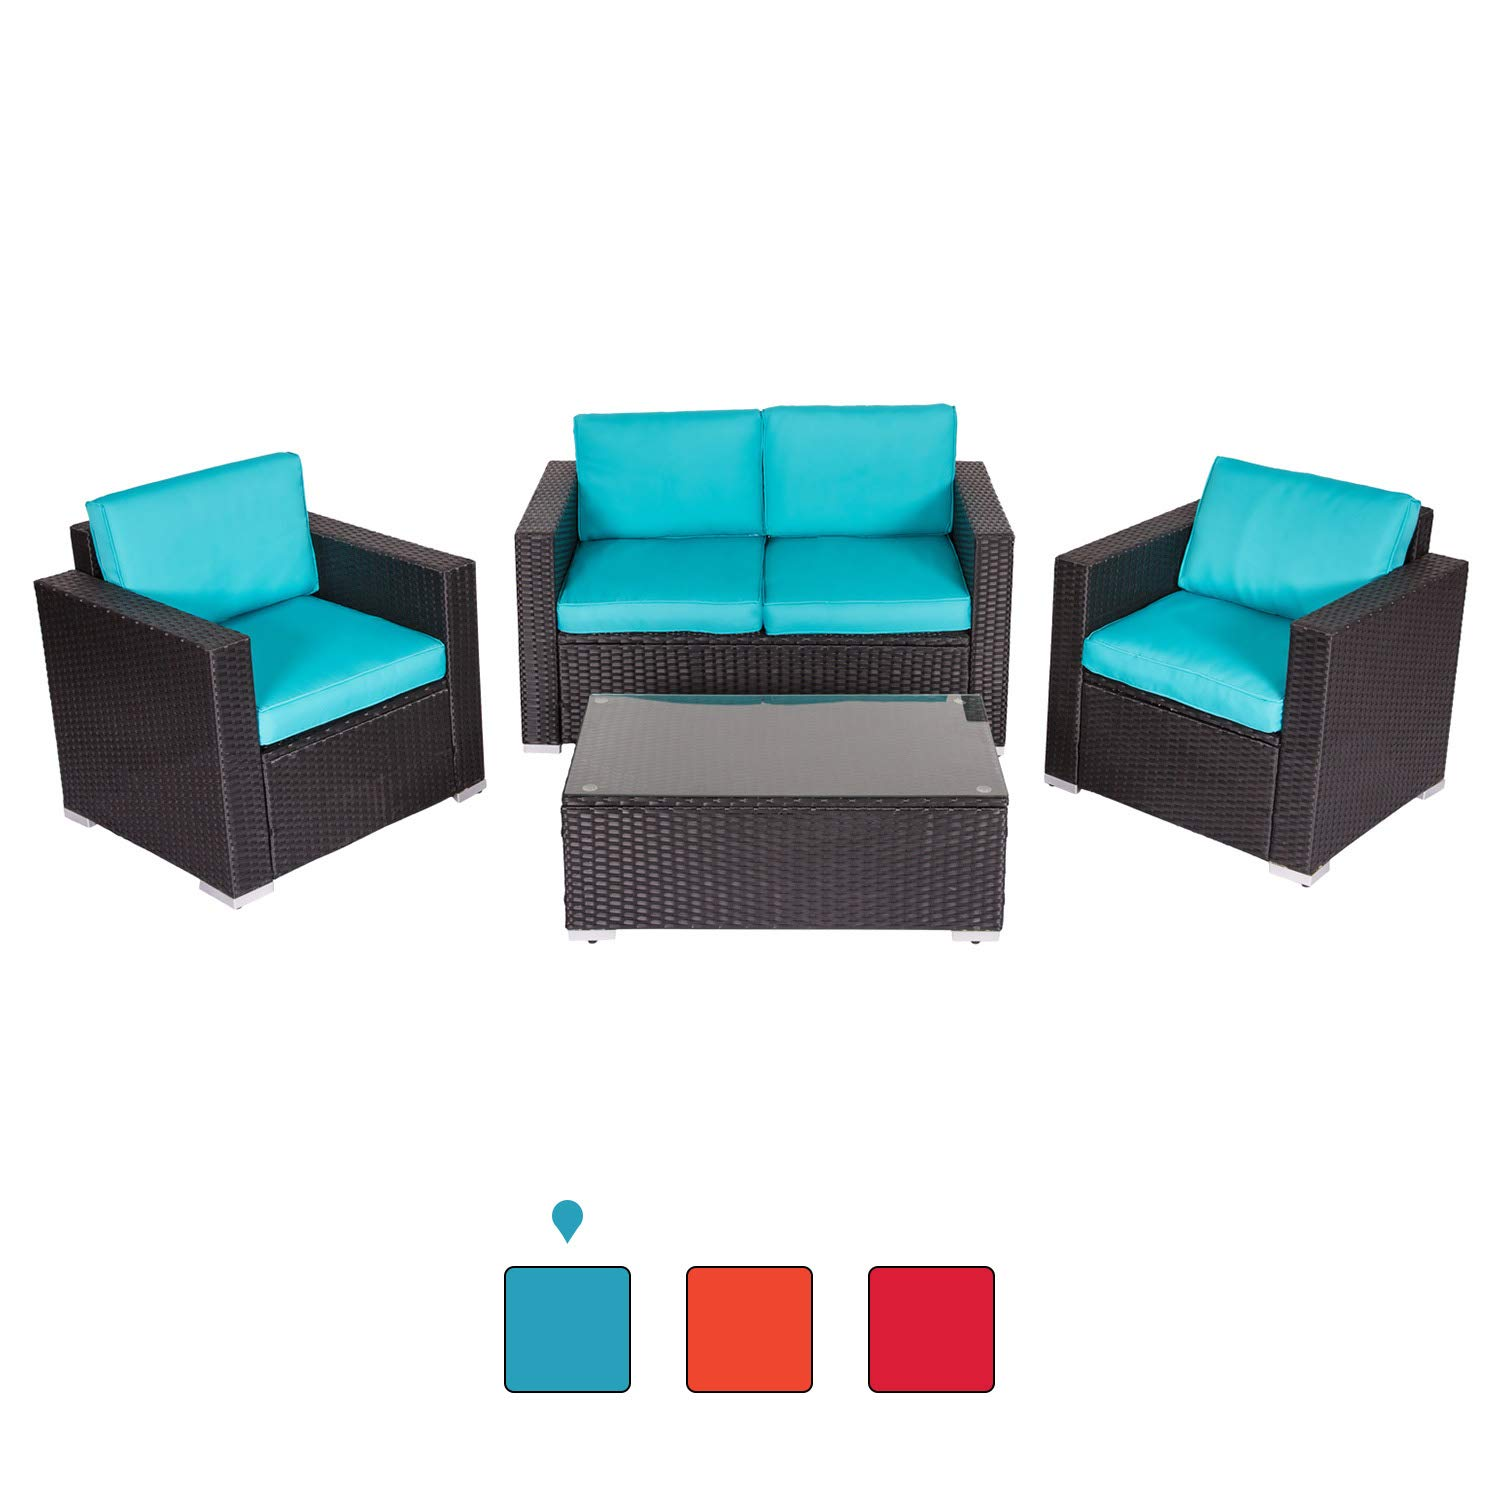 Peach Tree 4 PCs Outdoor Patio PE Rattan Wicker Sofa Sectional Furniture Set with Tea Table by Peachtree Press Inc